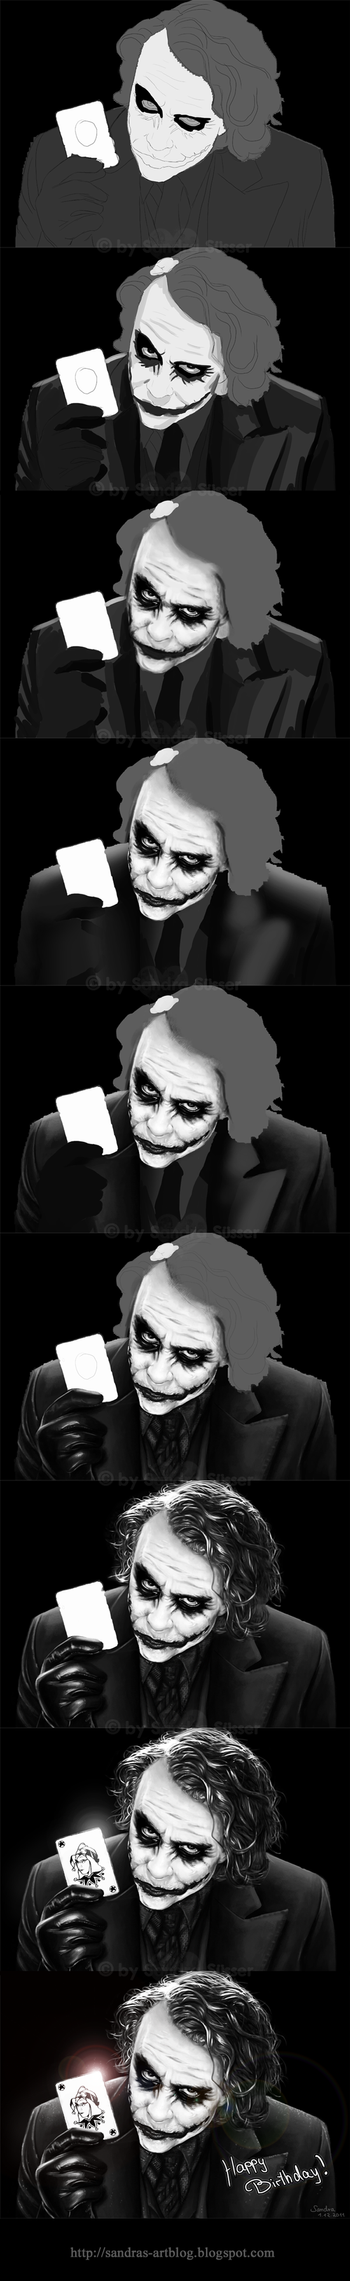 The Joker - WIP by Sadako-xD